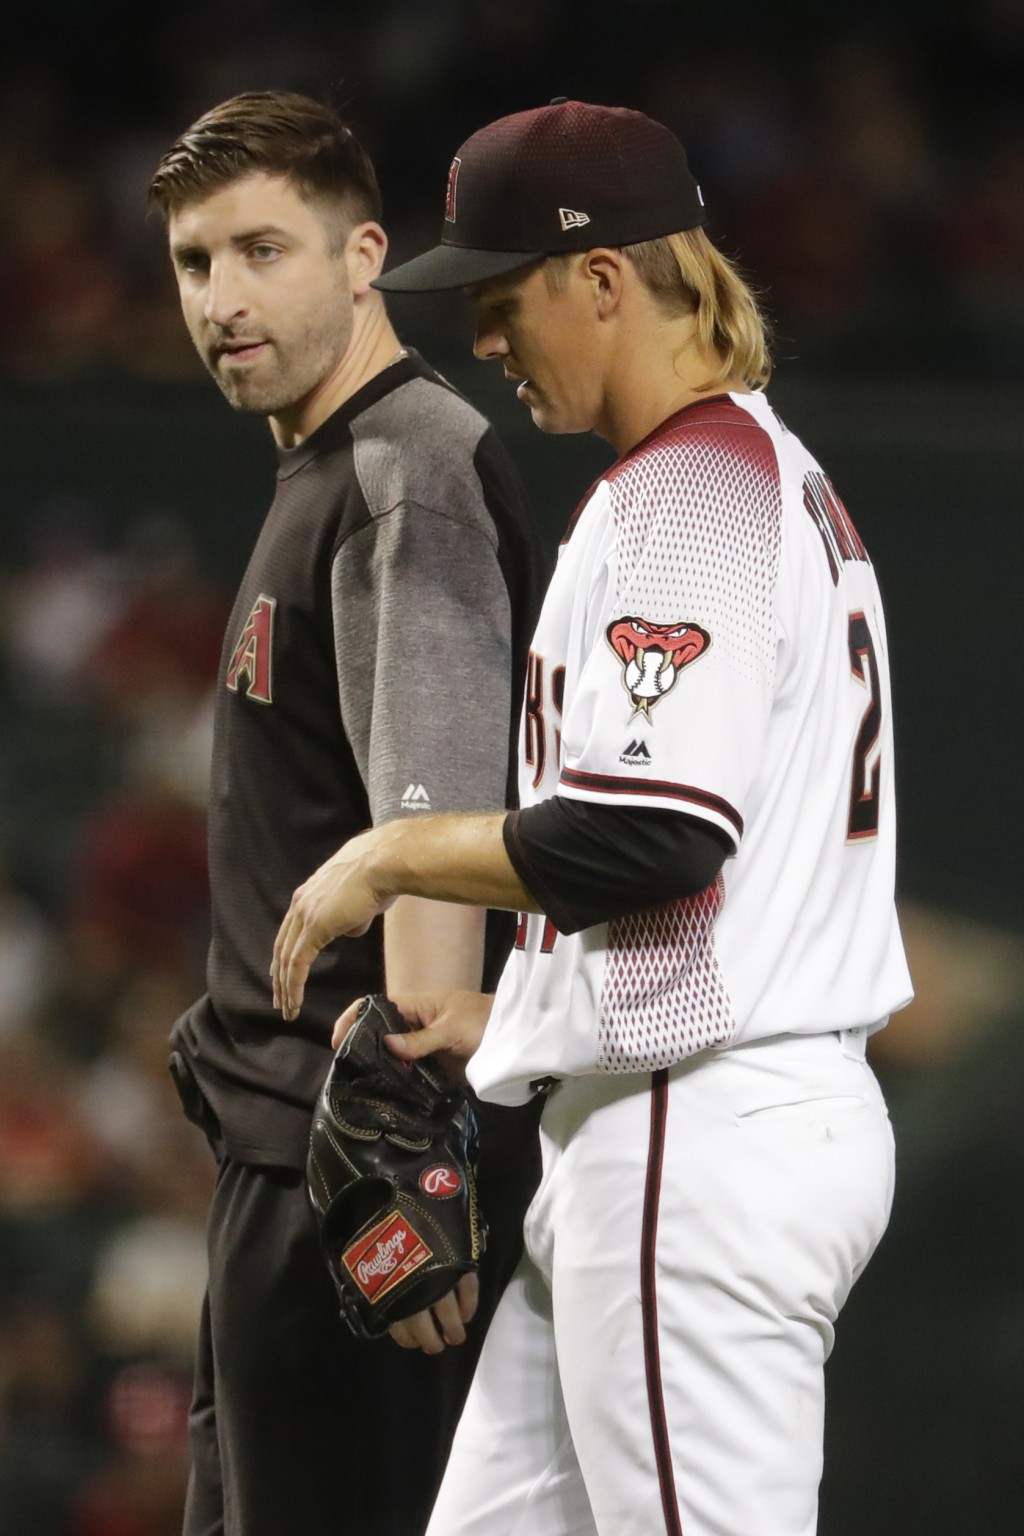 Arizona Diamondbacks starting pitcher Zack Greinke leaves the field with a trainer during the eighth inning of a baseball game against the Pittsburgh